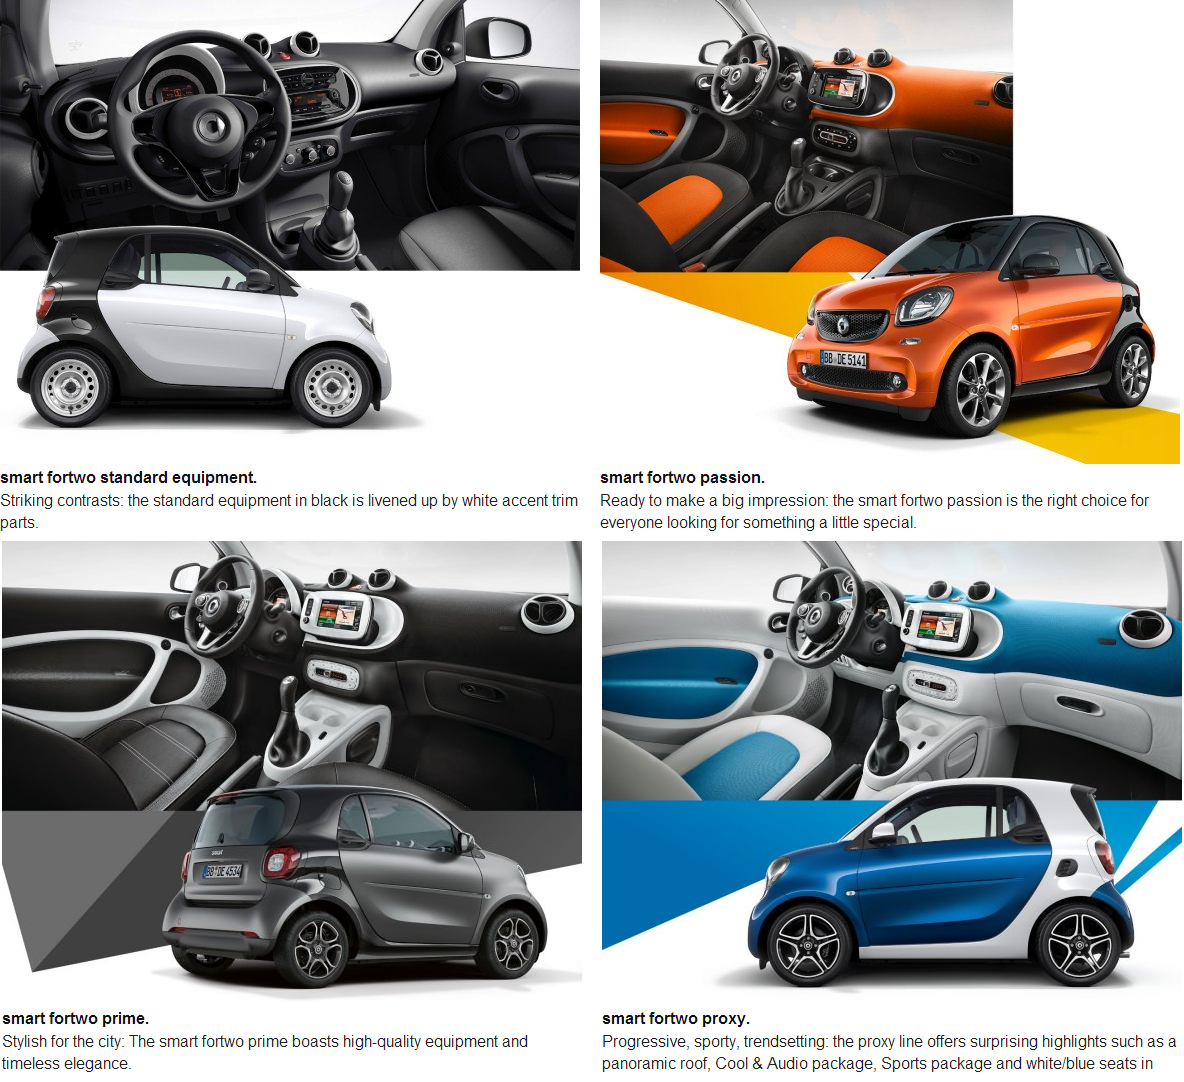 four wheel drive magazine nuevos renault twingo y smart fortwo forfour. Black Bedroom Furniture Sets. Home Design Ideas